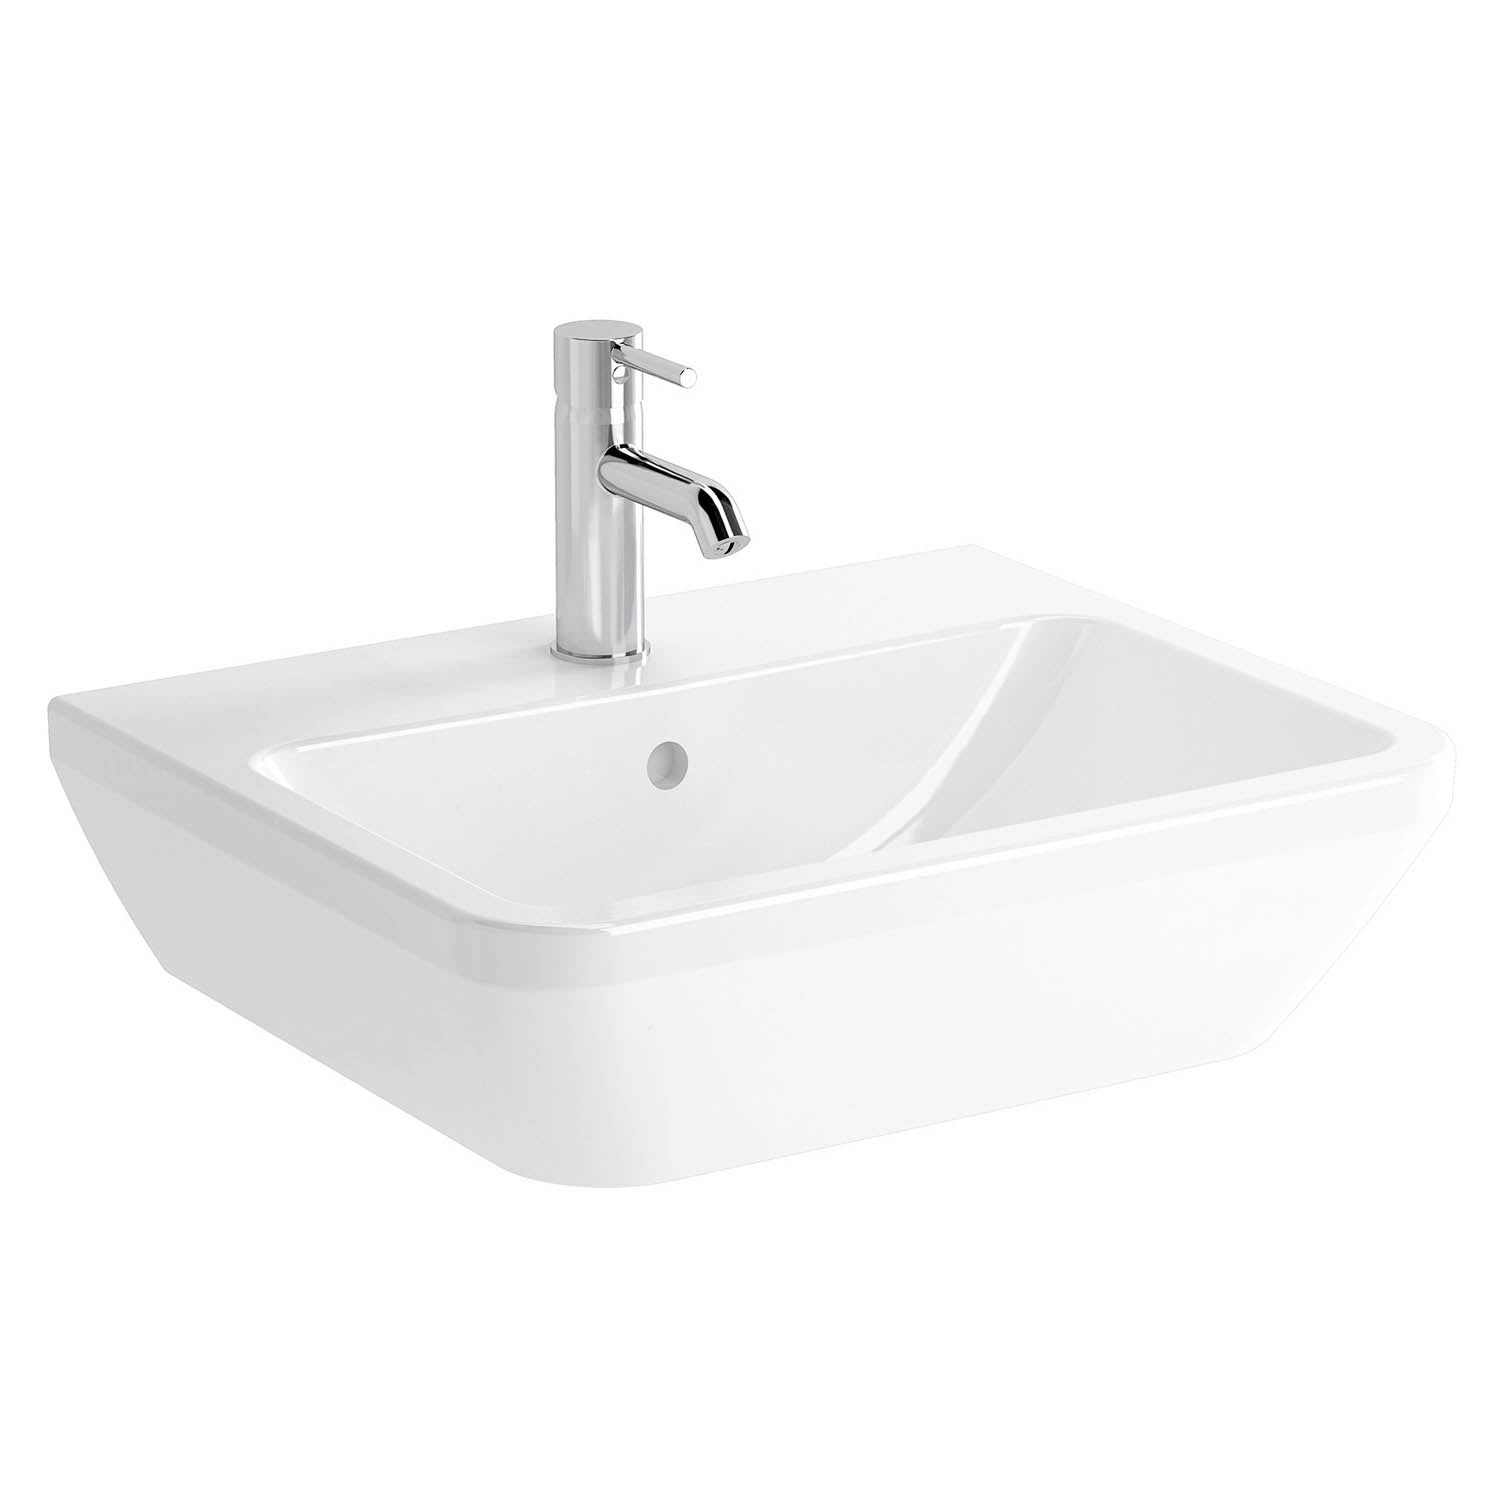 550mm Consilio Wall Hung Basin with one tap hole and an overflow on a white background